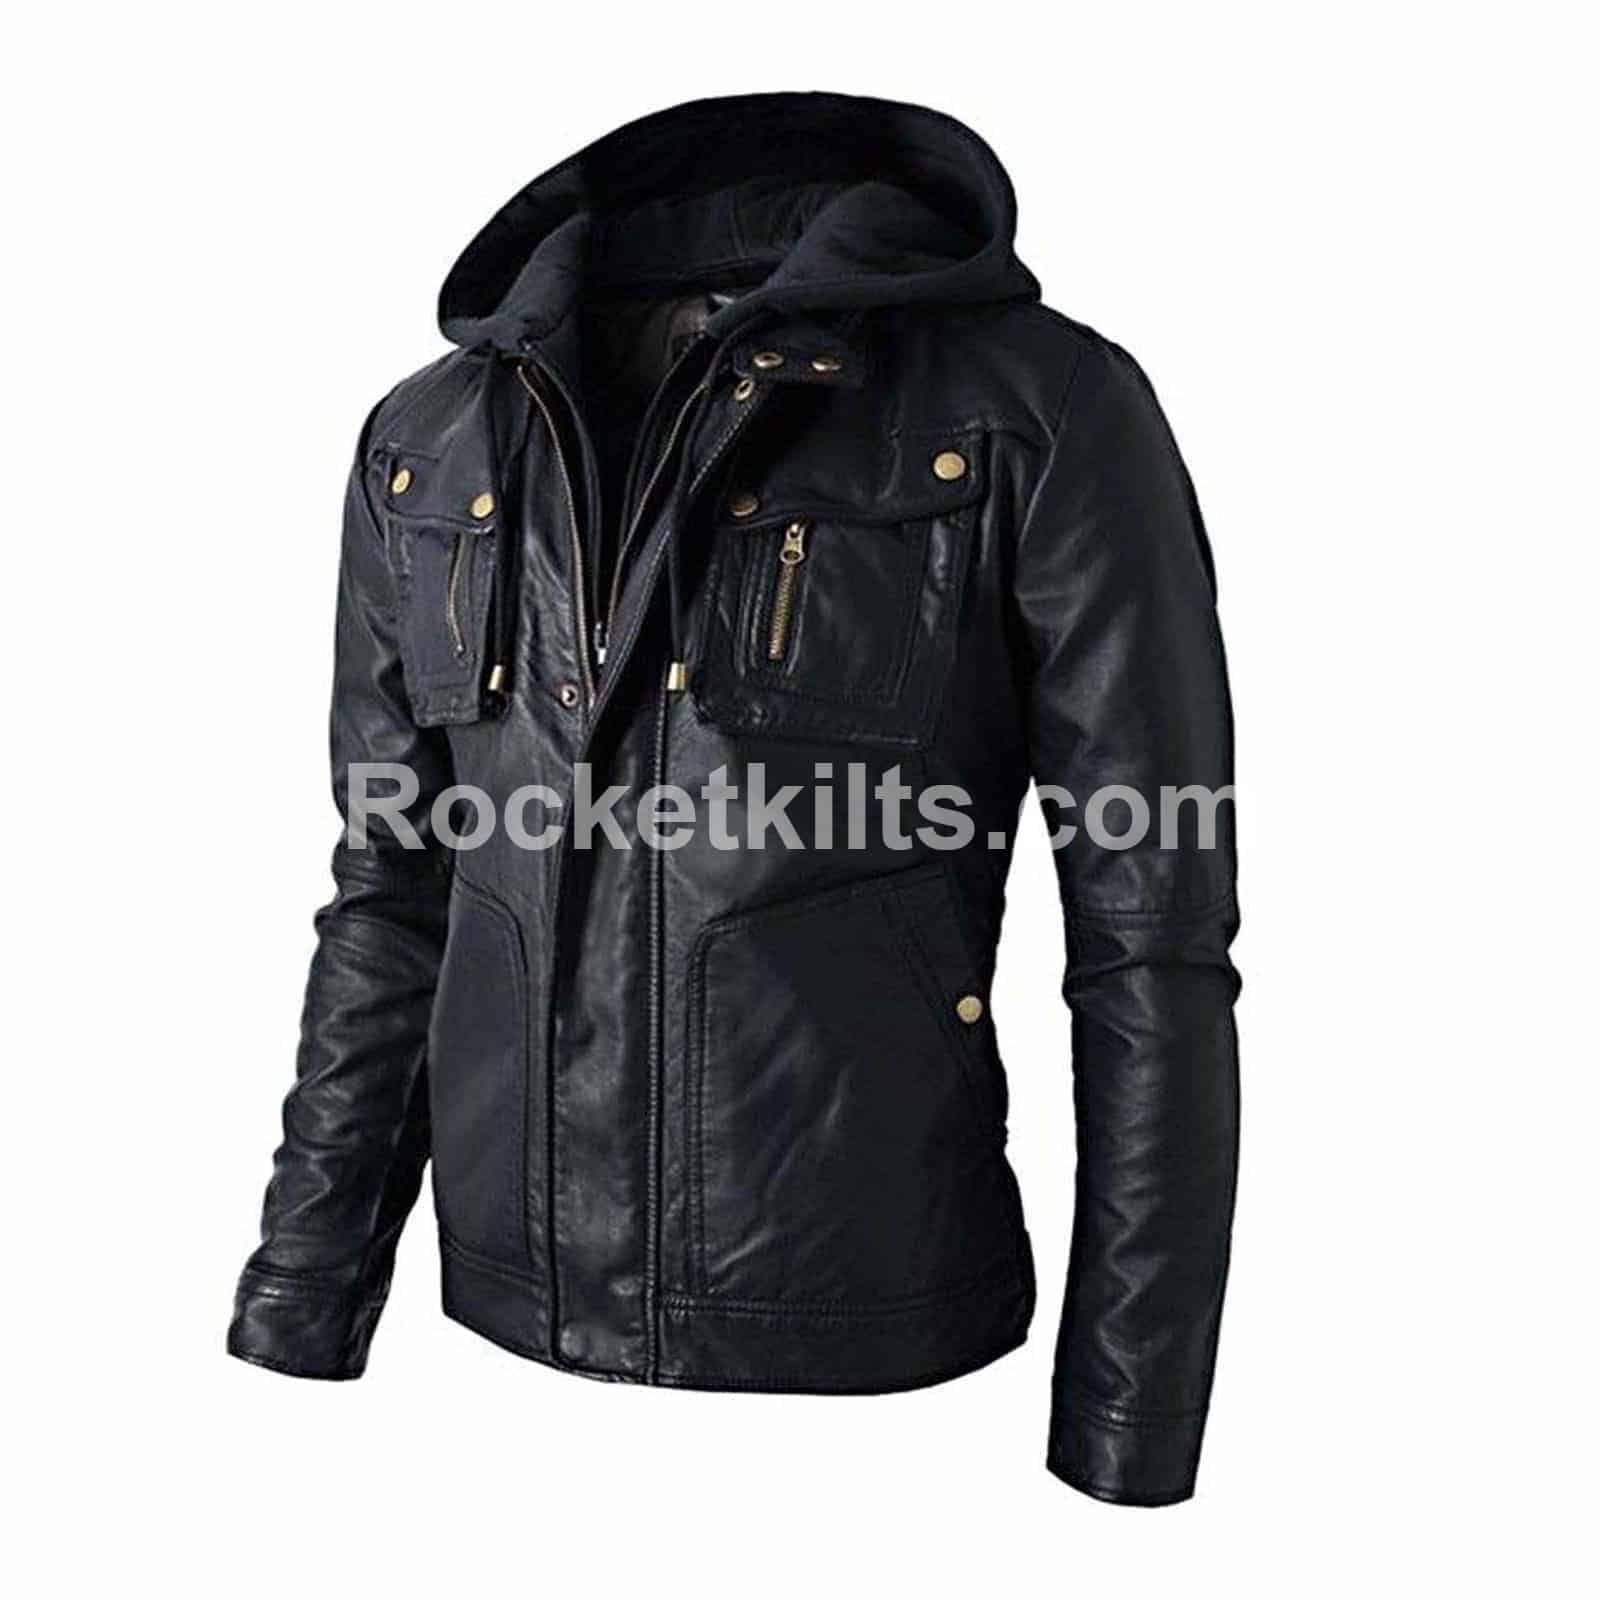 0d281d262 New Stylish Men's Brando Style Biker Hooded Leather Jacket